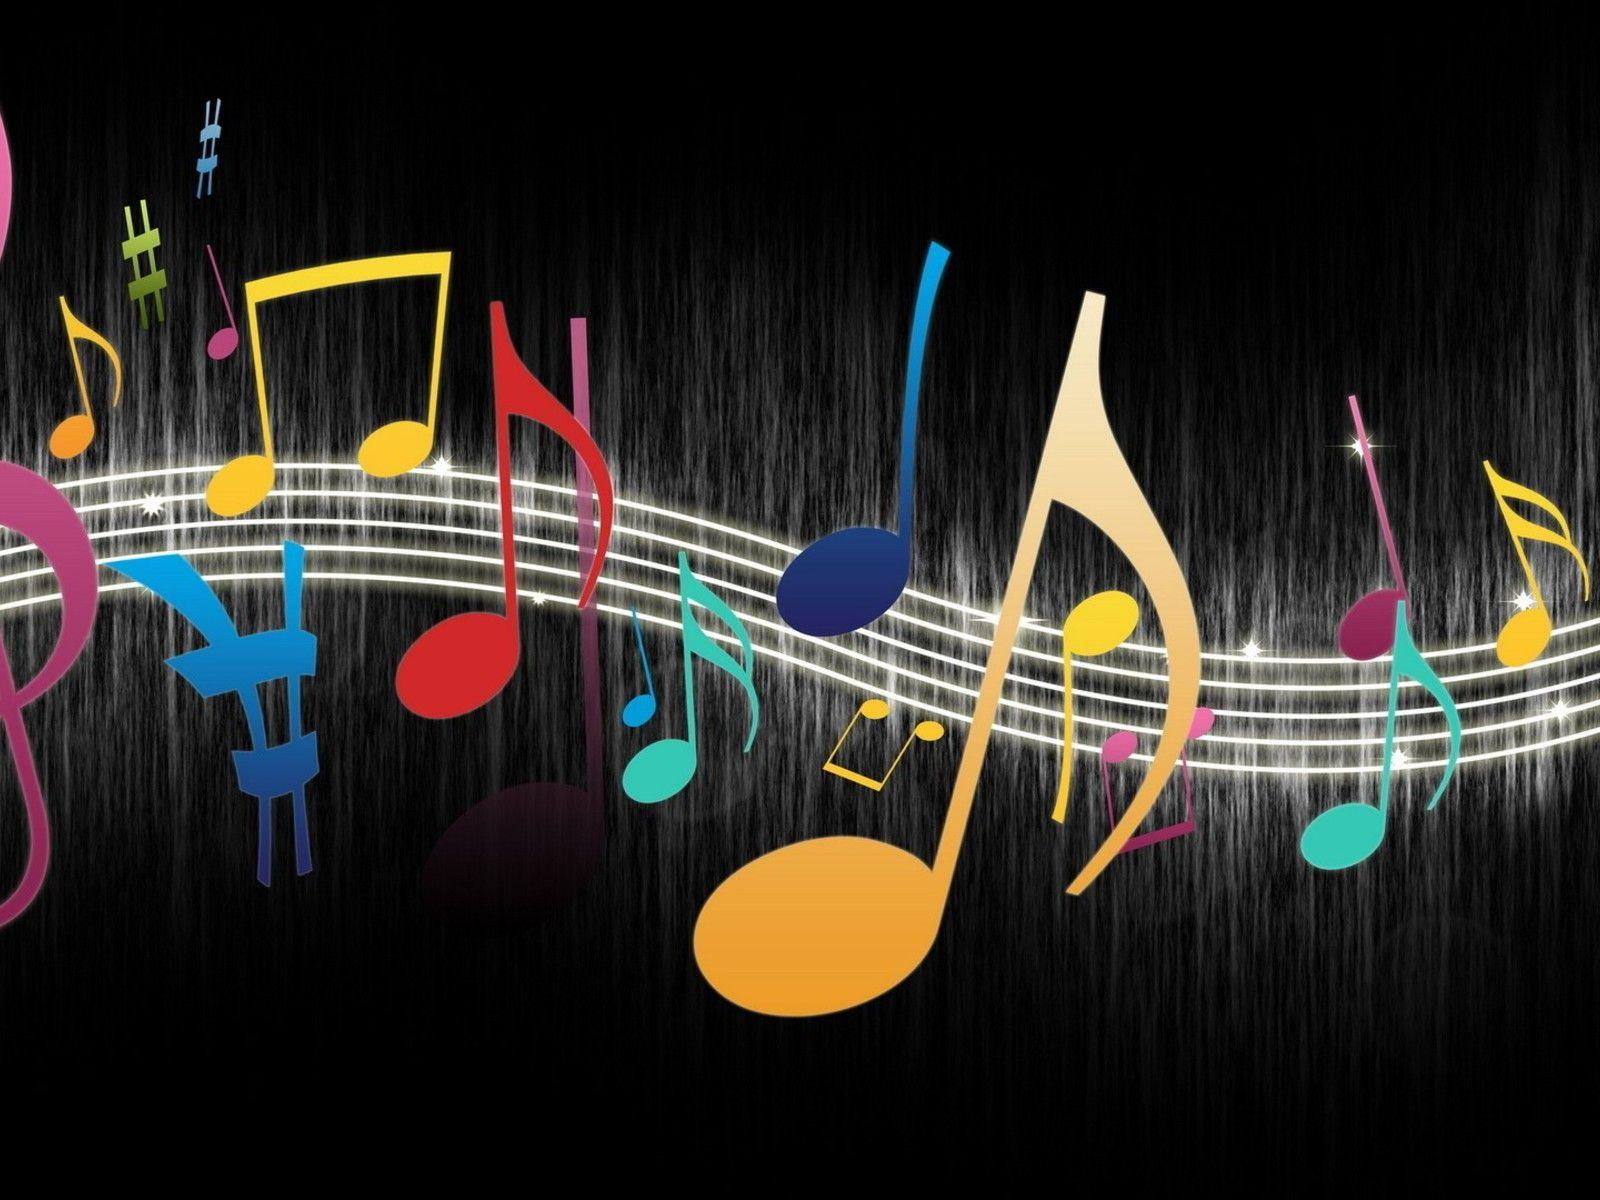 Music hd wallpaper | AllWallpaper.in #1895 | PC | en